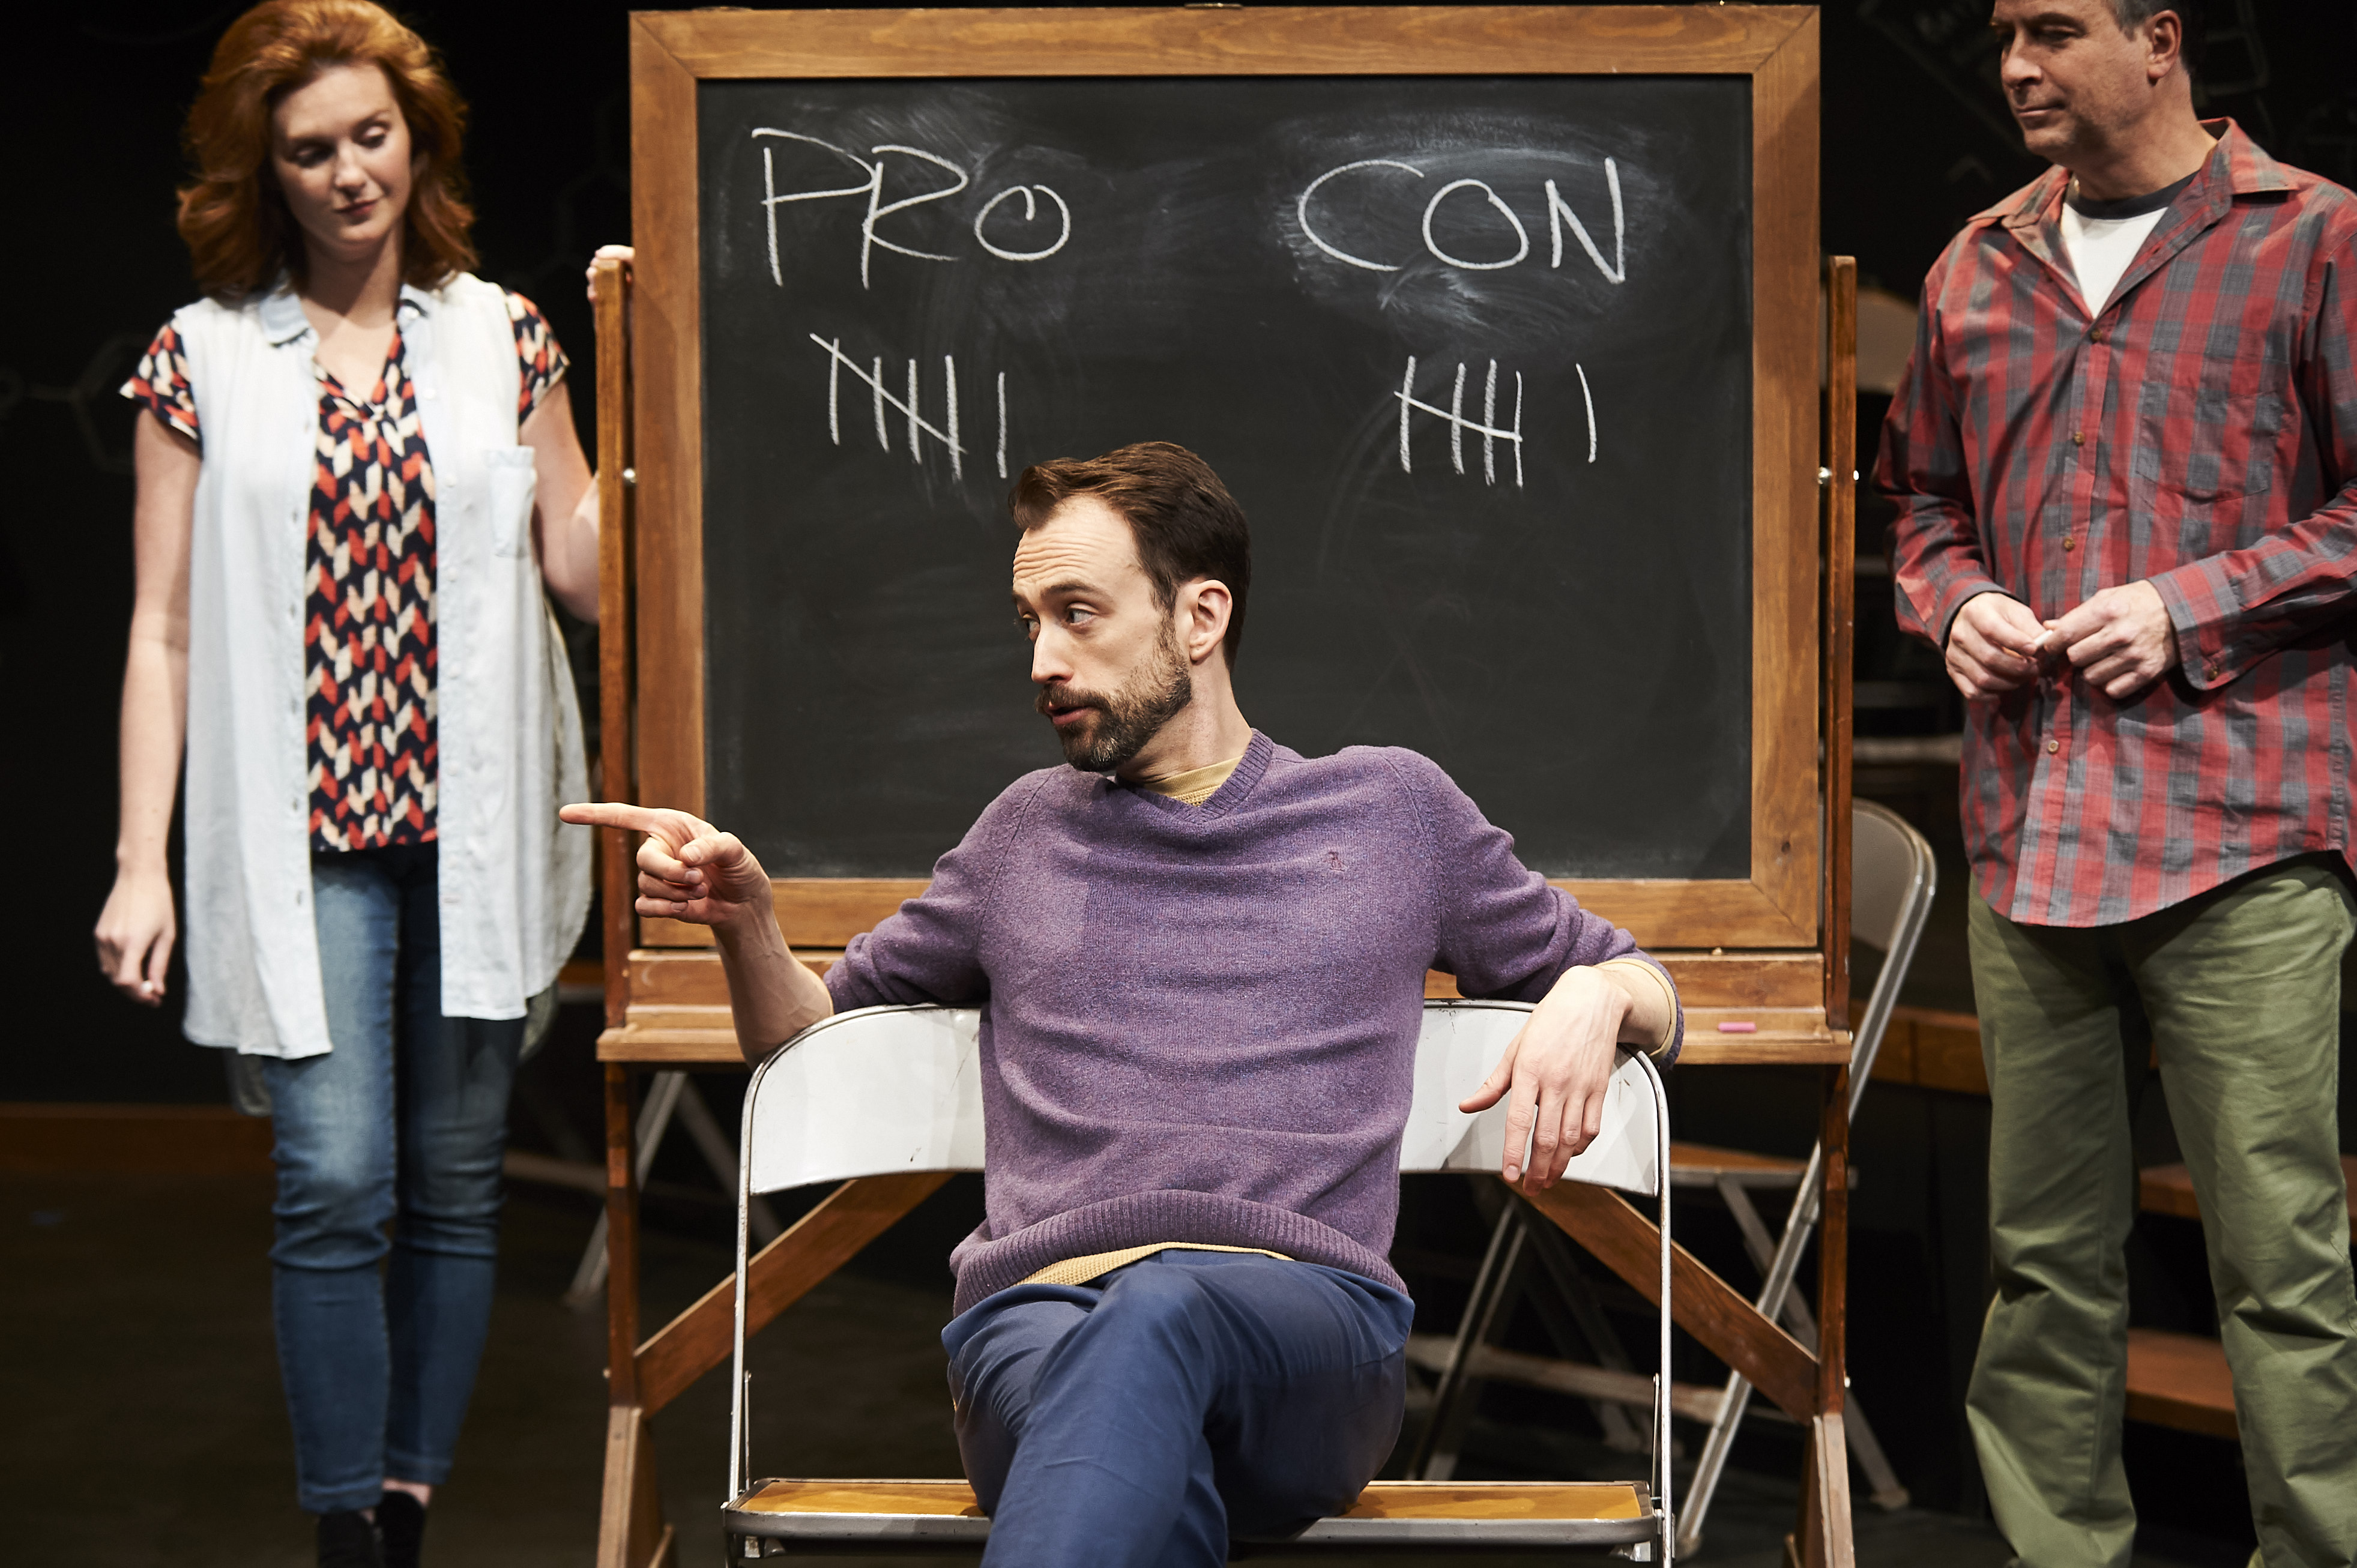 Sean (Kyle Cameron, seated) likes to get insanely, destructively too high. Crazier yet, he figures the costs and benefits balance out, though Daina Michelle Griffith and Daniel Krell don't seem convinced.